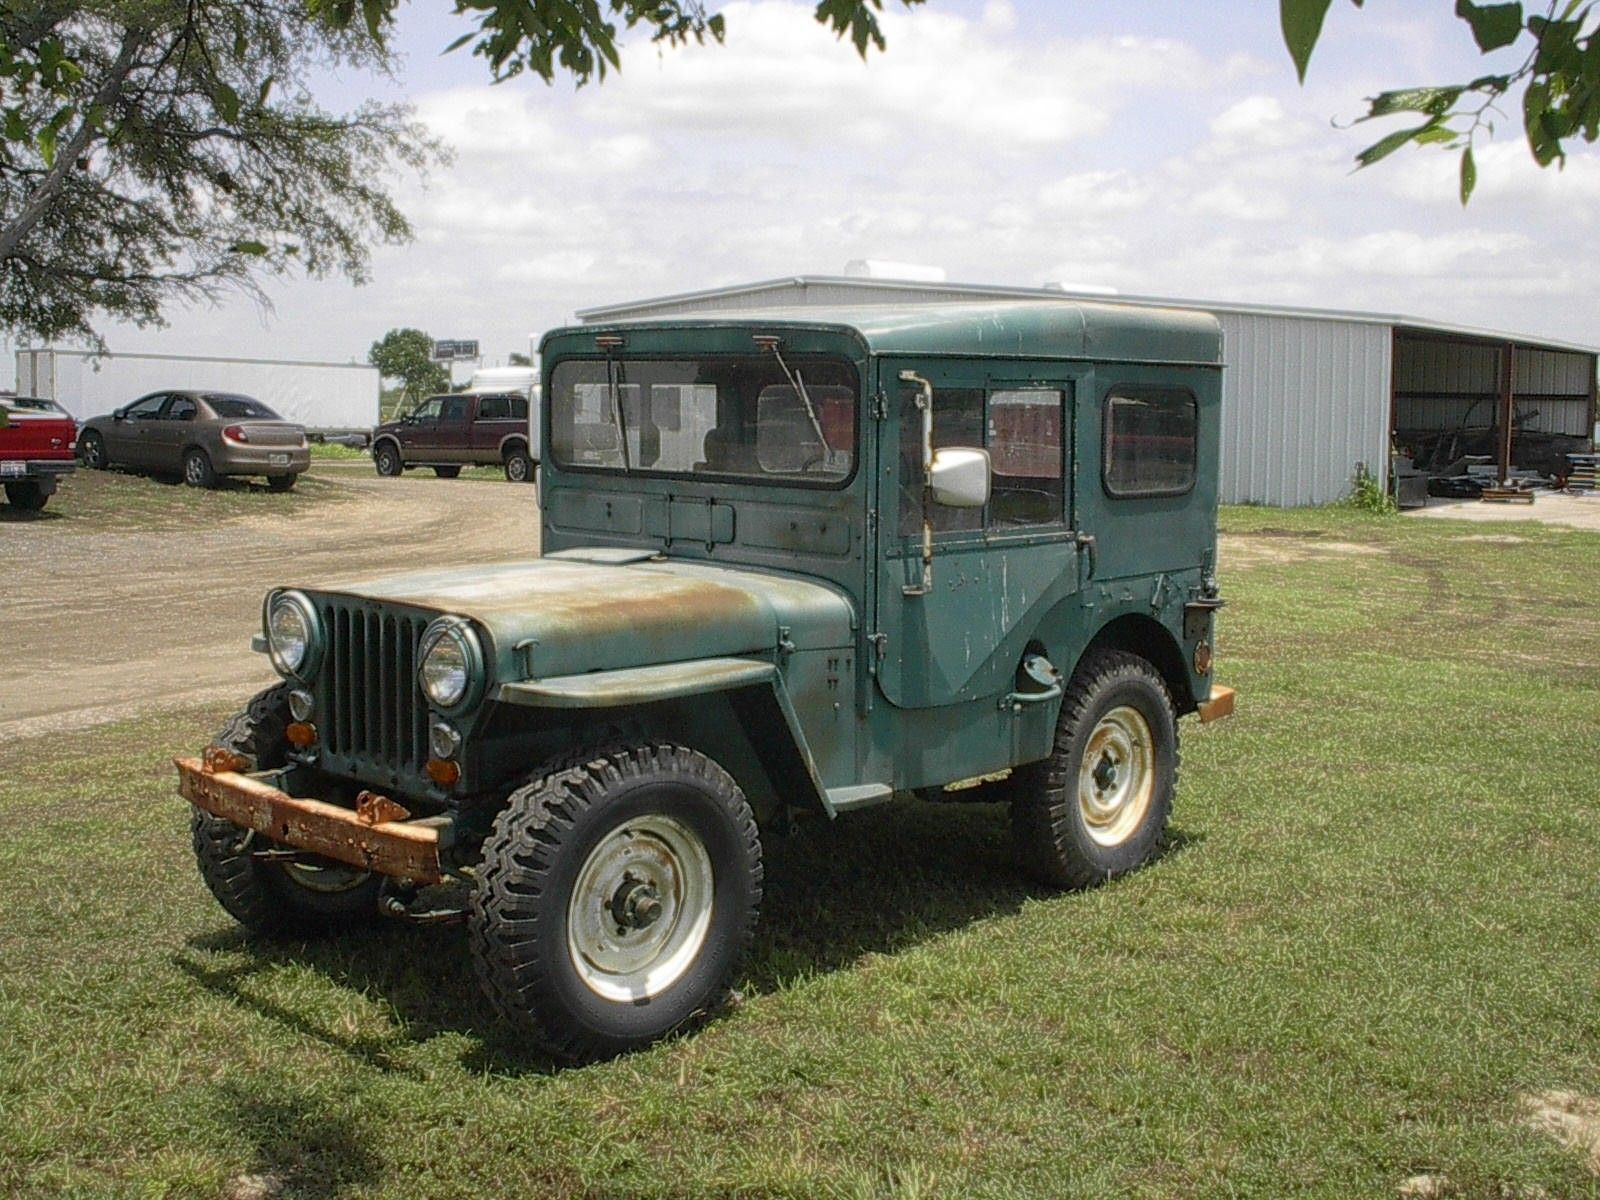 medium resolution of m38 willys jeep for sale in waxahachie texas korean war army jeep